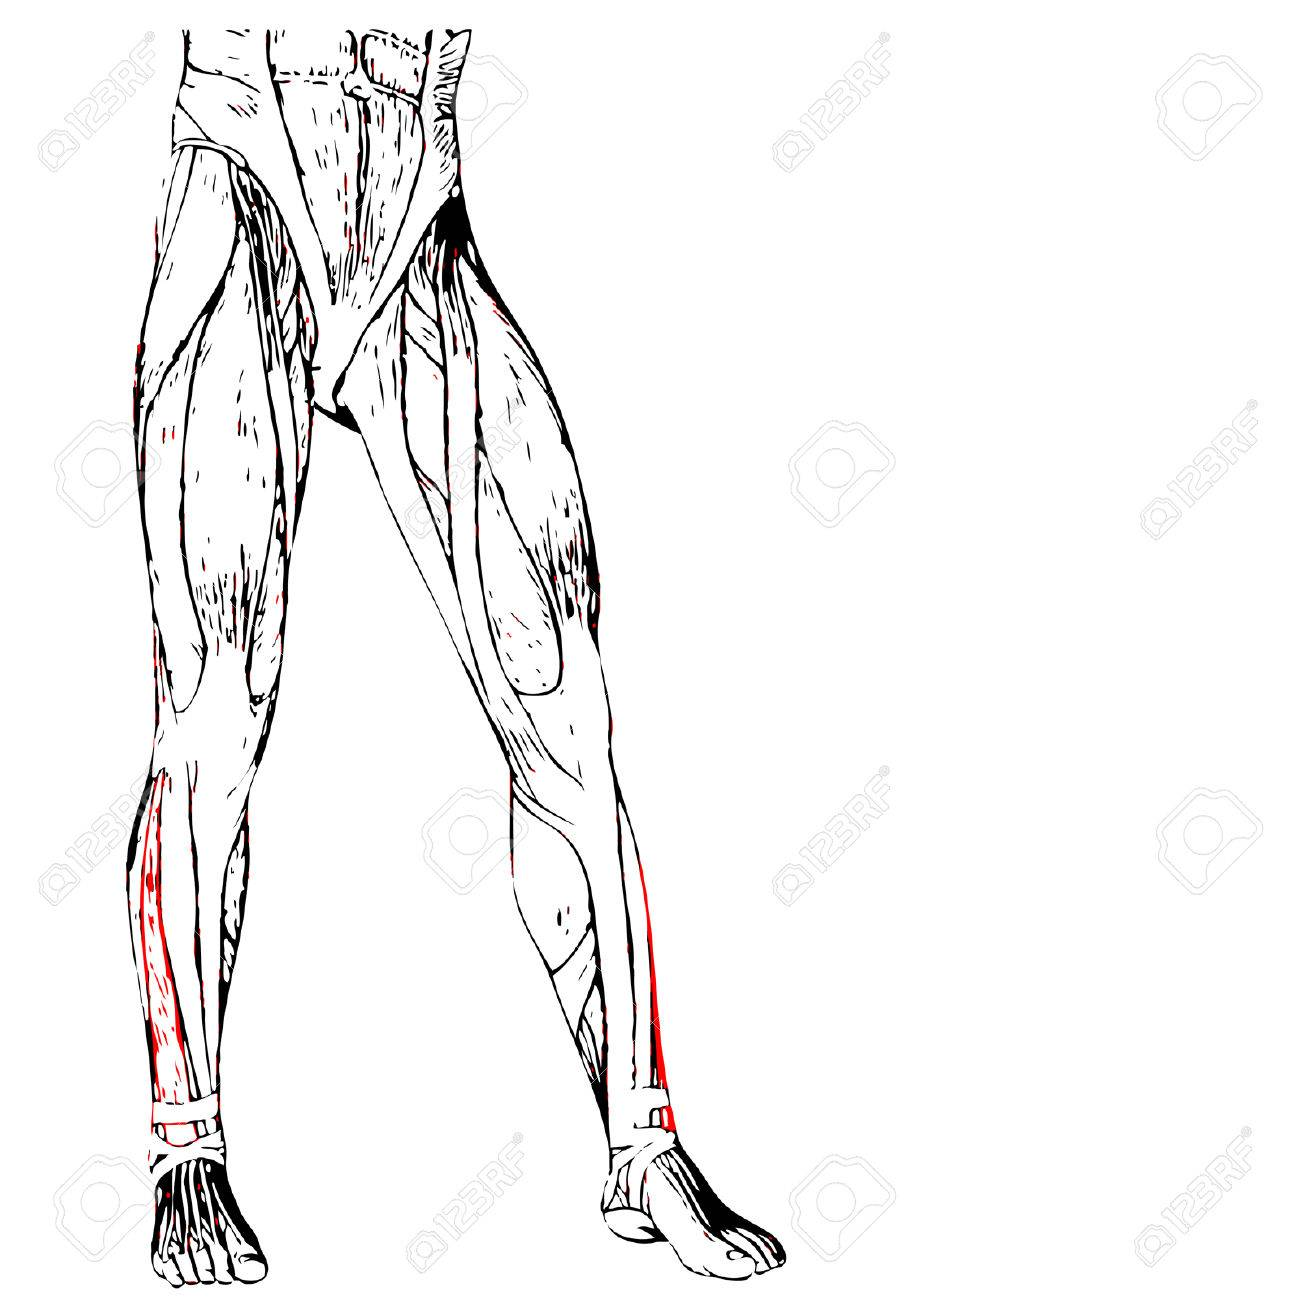 Leg Muscle Drawing At Getdrawings Free For Personal Use Leg